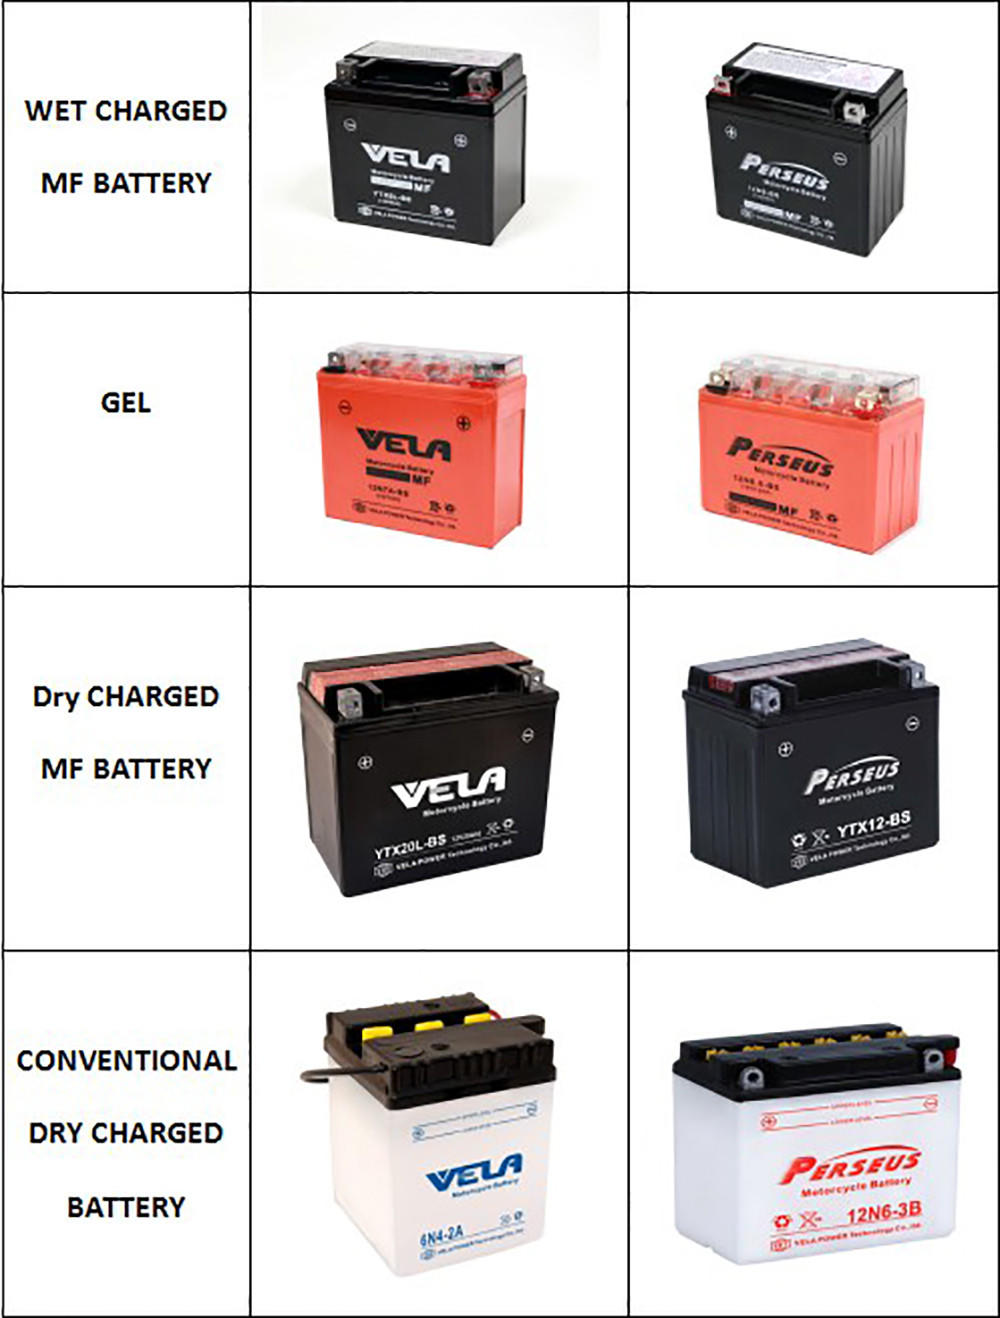 VELA lead acid motorcycle battery very useful for motorcyles-2